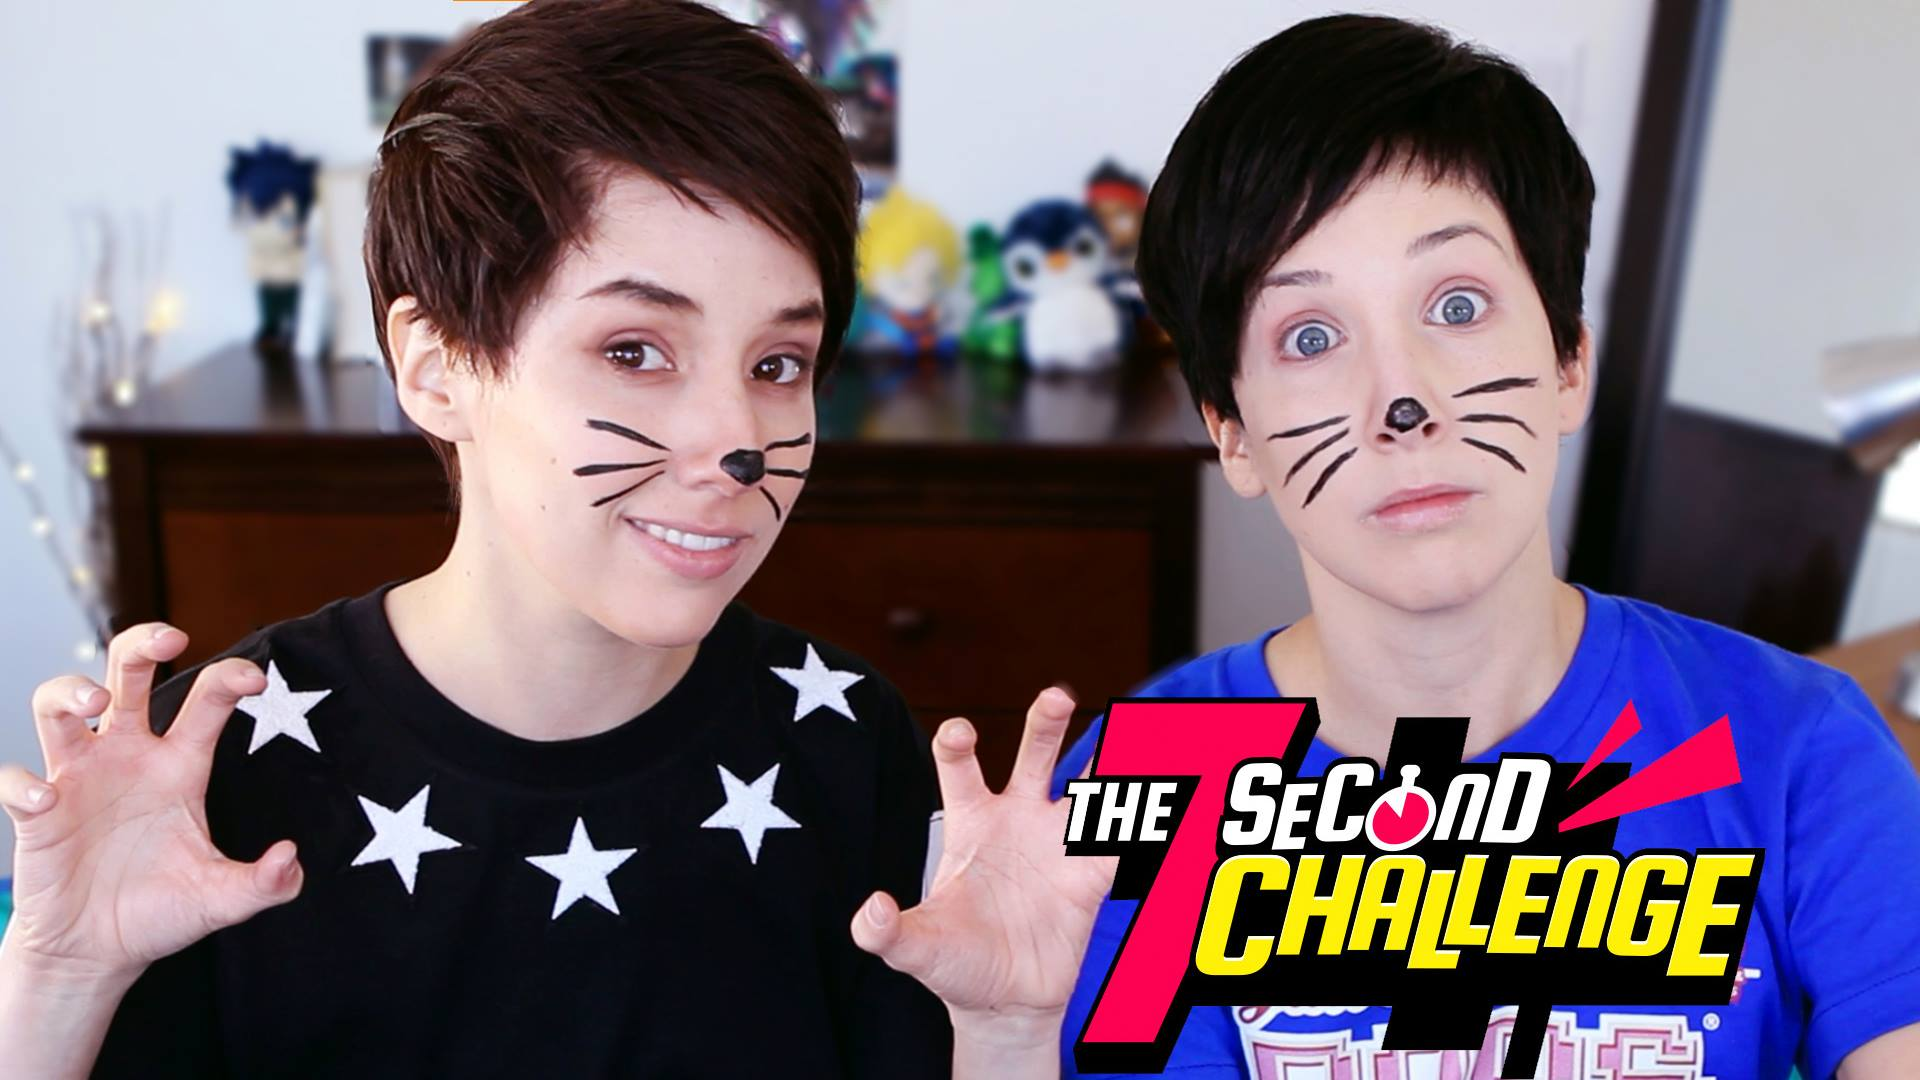 Dan And Phils 7 Second Challenge The Hillywood Show